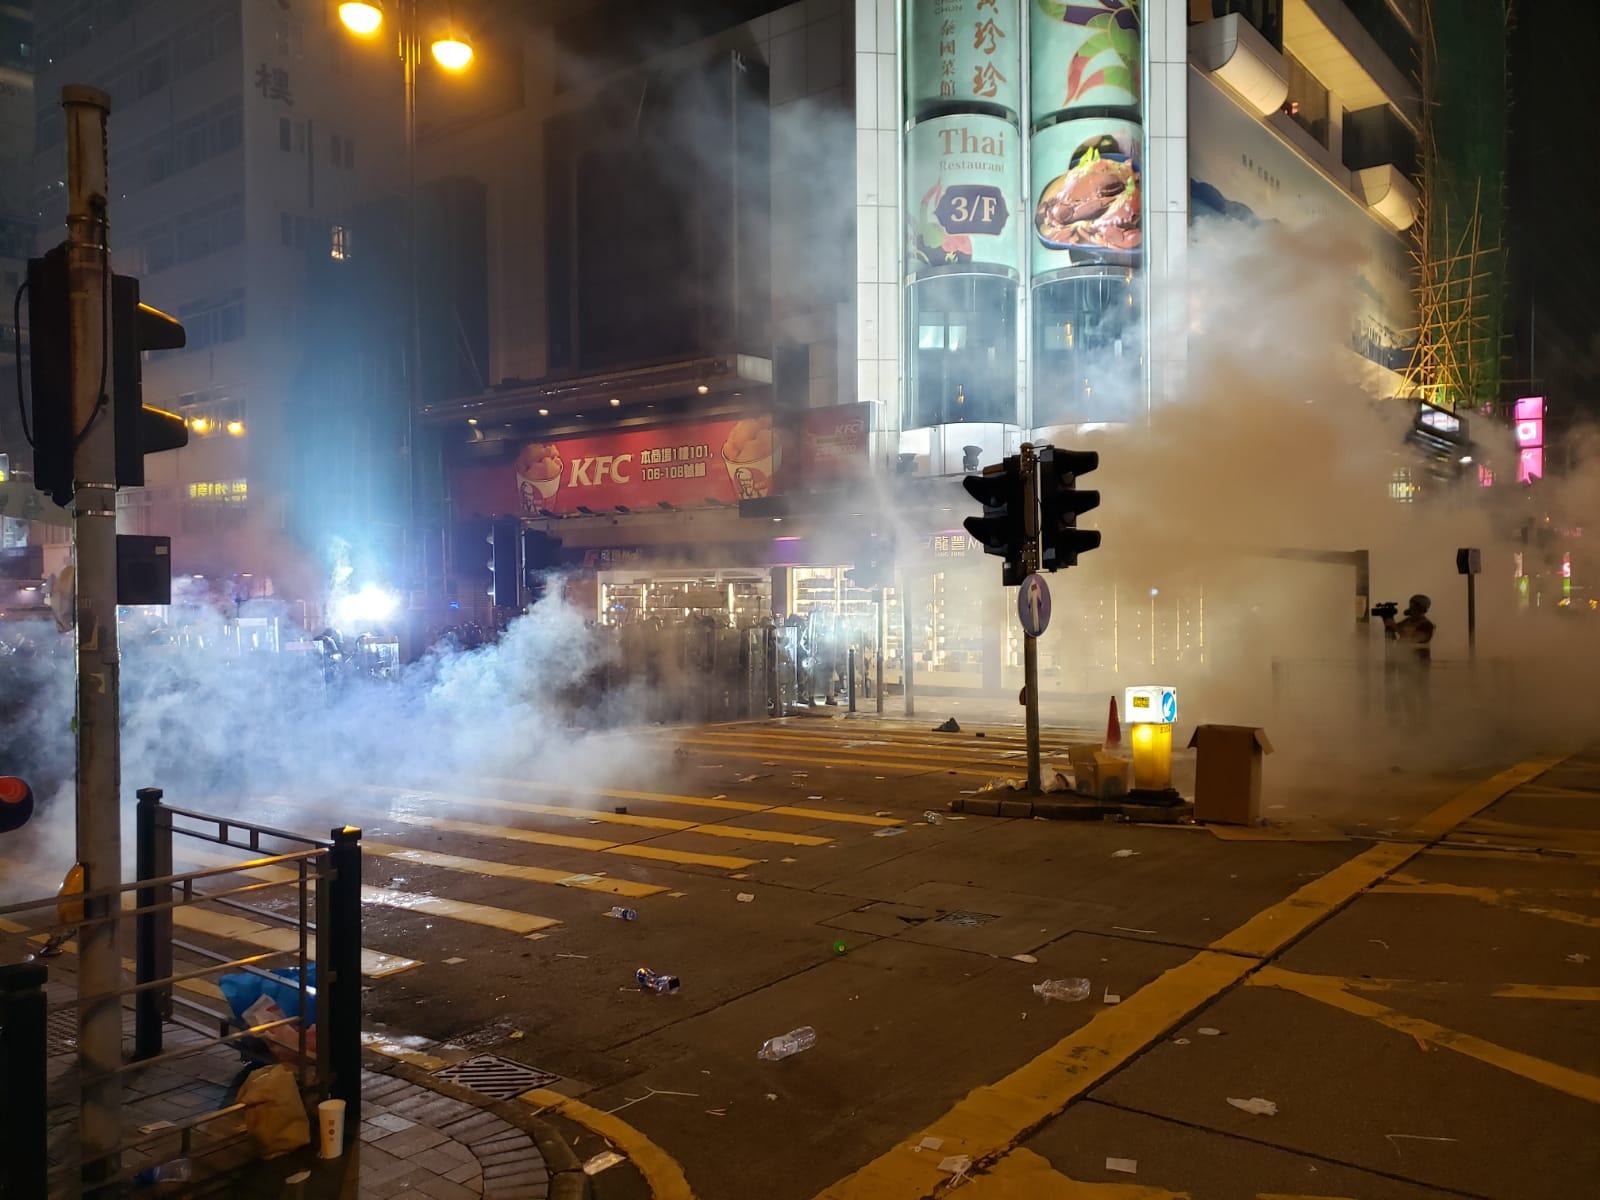 Live updates: Riot police fire tear gas to disperse Hong Kong protesters - CNN